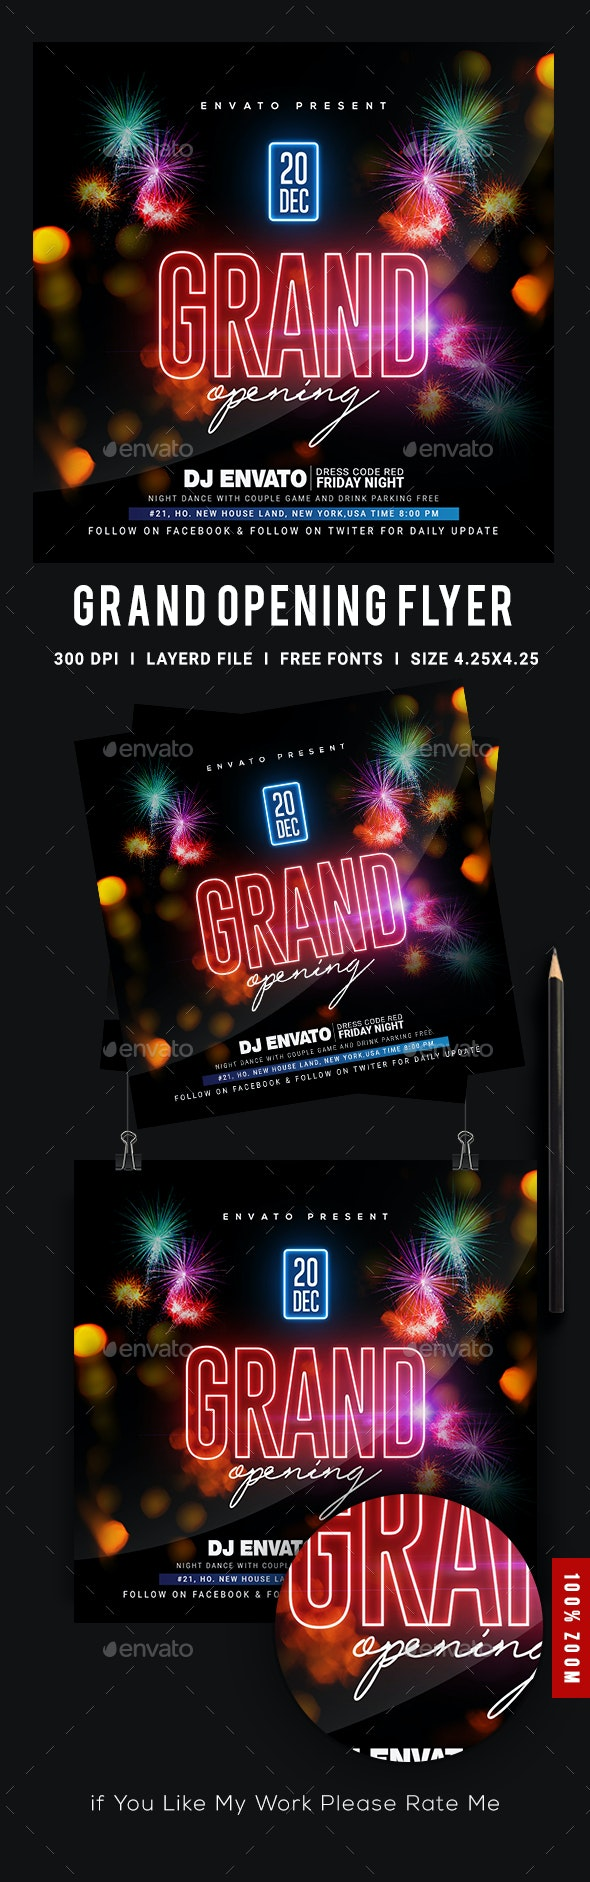 Grand Opening Party Flyer - Events Flyers